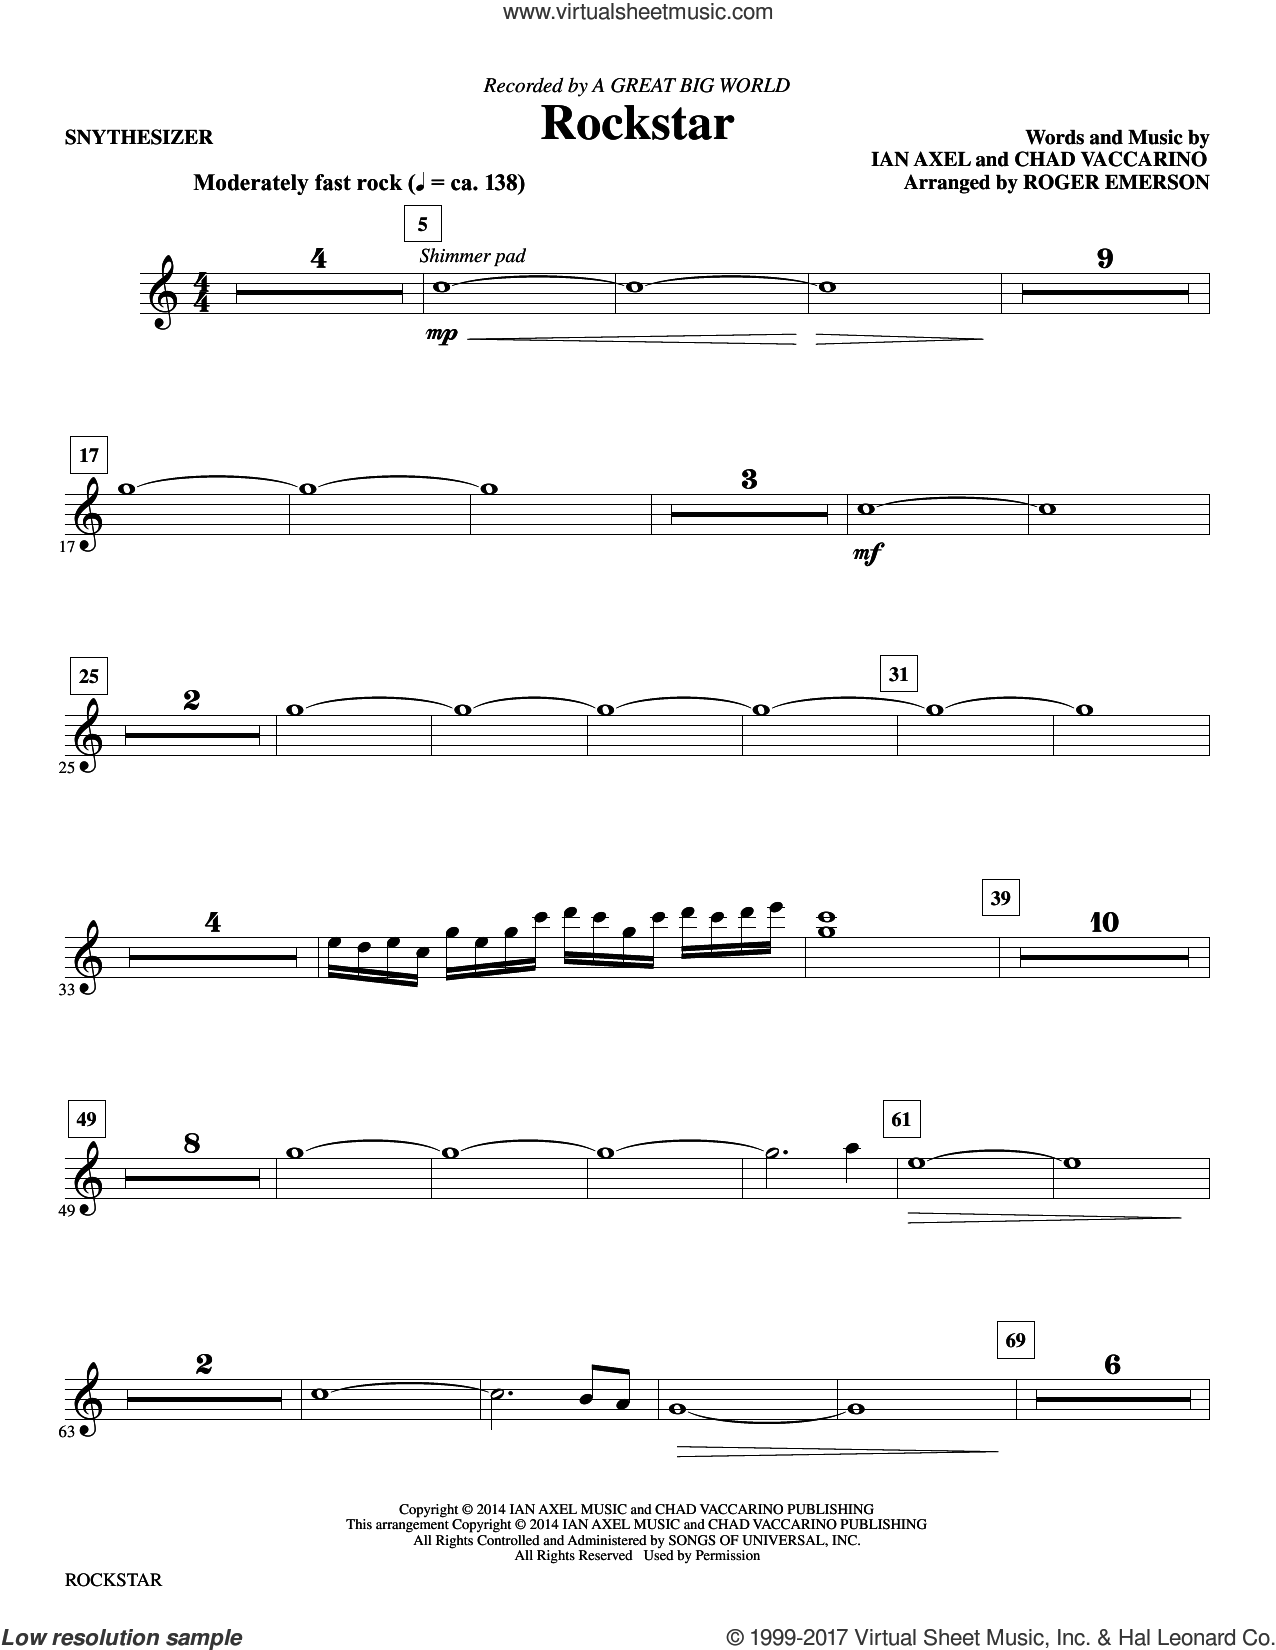 Rockstar (complete set of parts) sheet music for orchestra/band by Roger Emerson, A Great Big World, Chad Vaccarino and Ian Axel, intermediate skill level